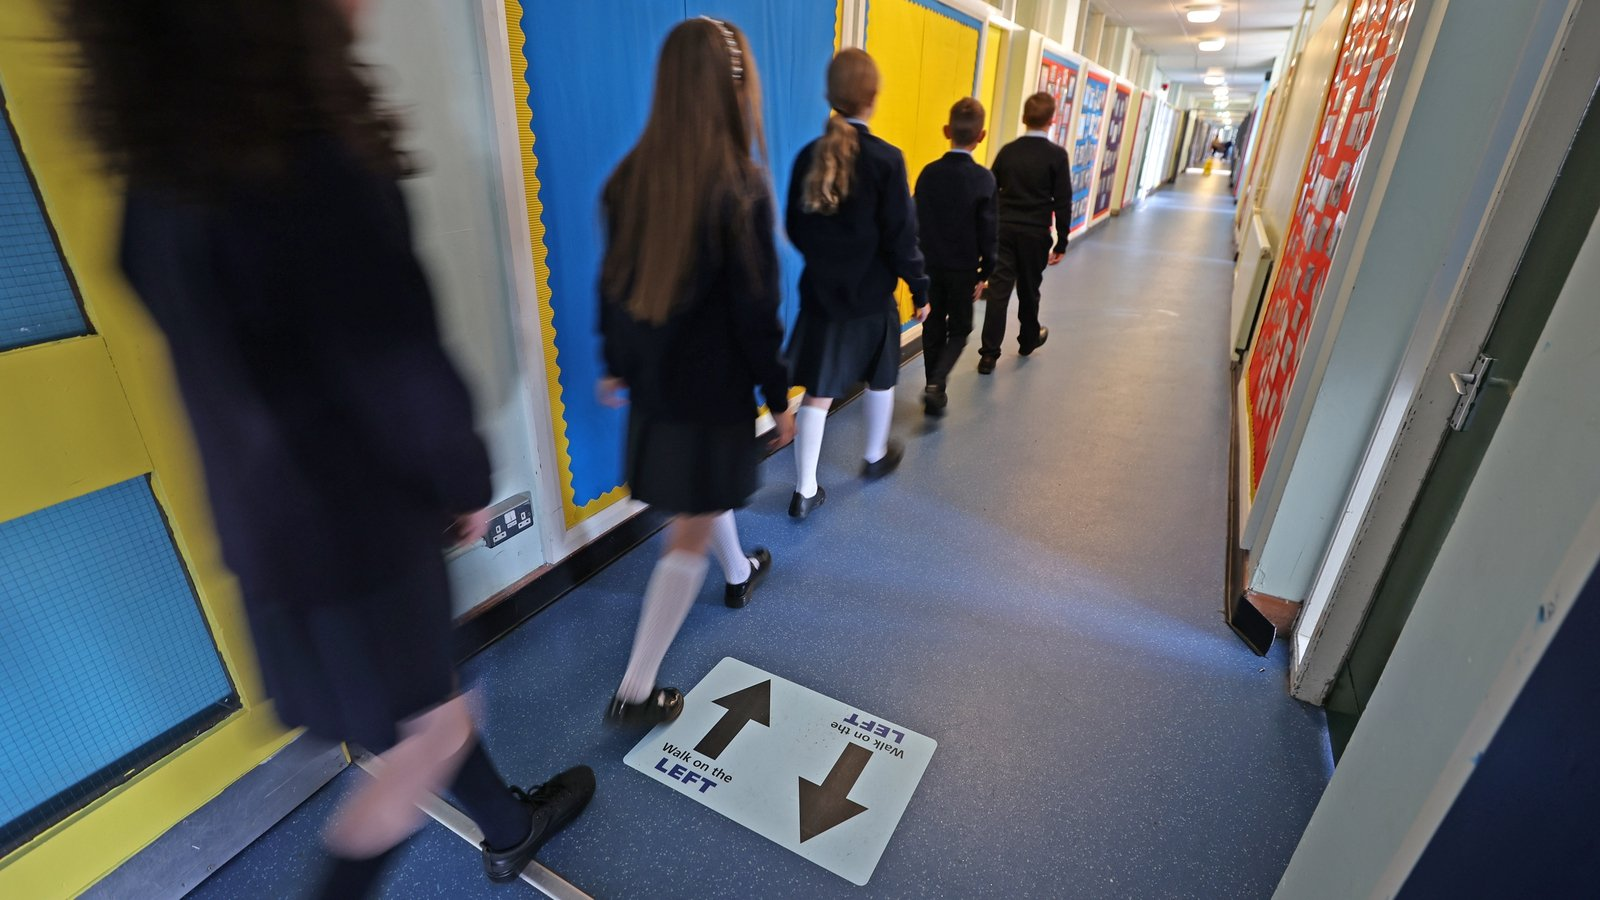 Variant strain could force NI schools to close